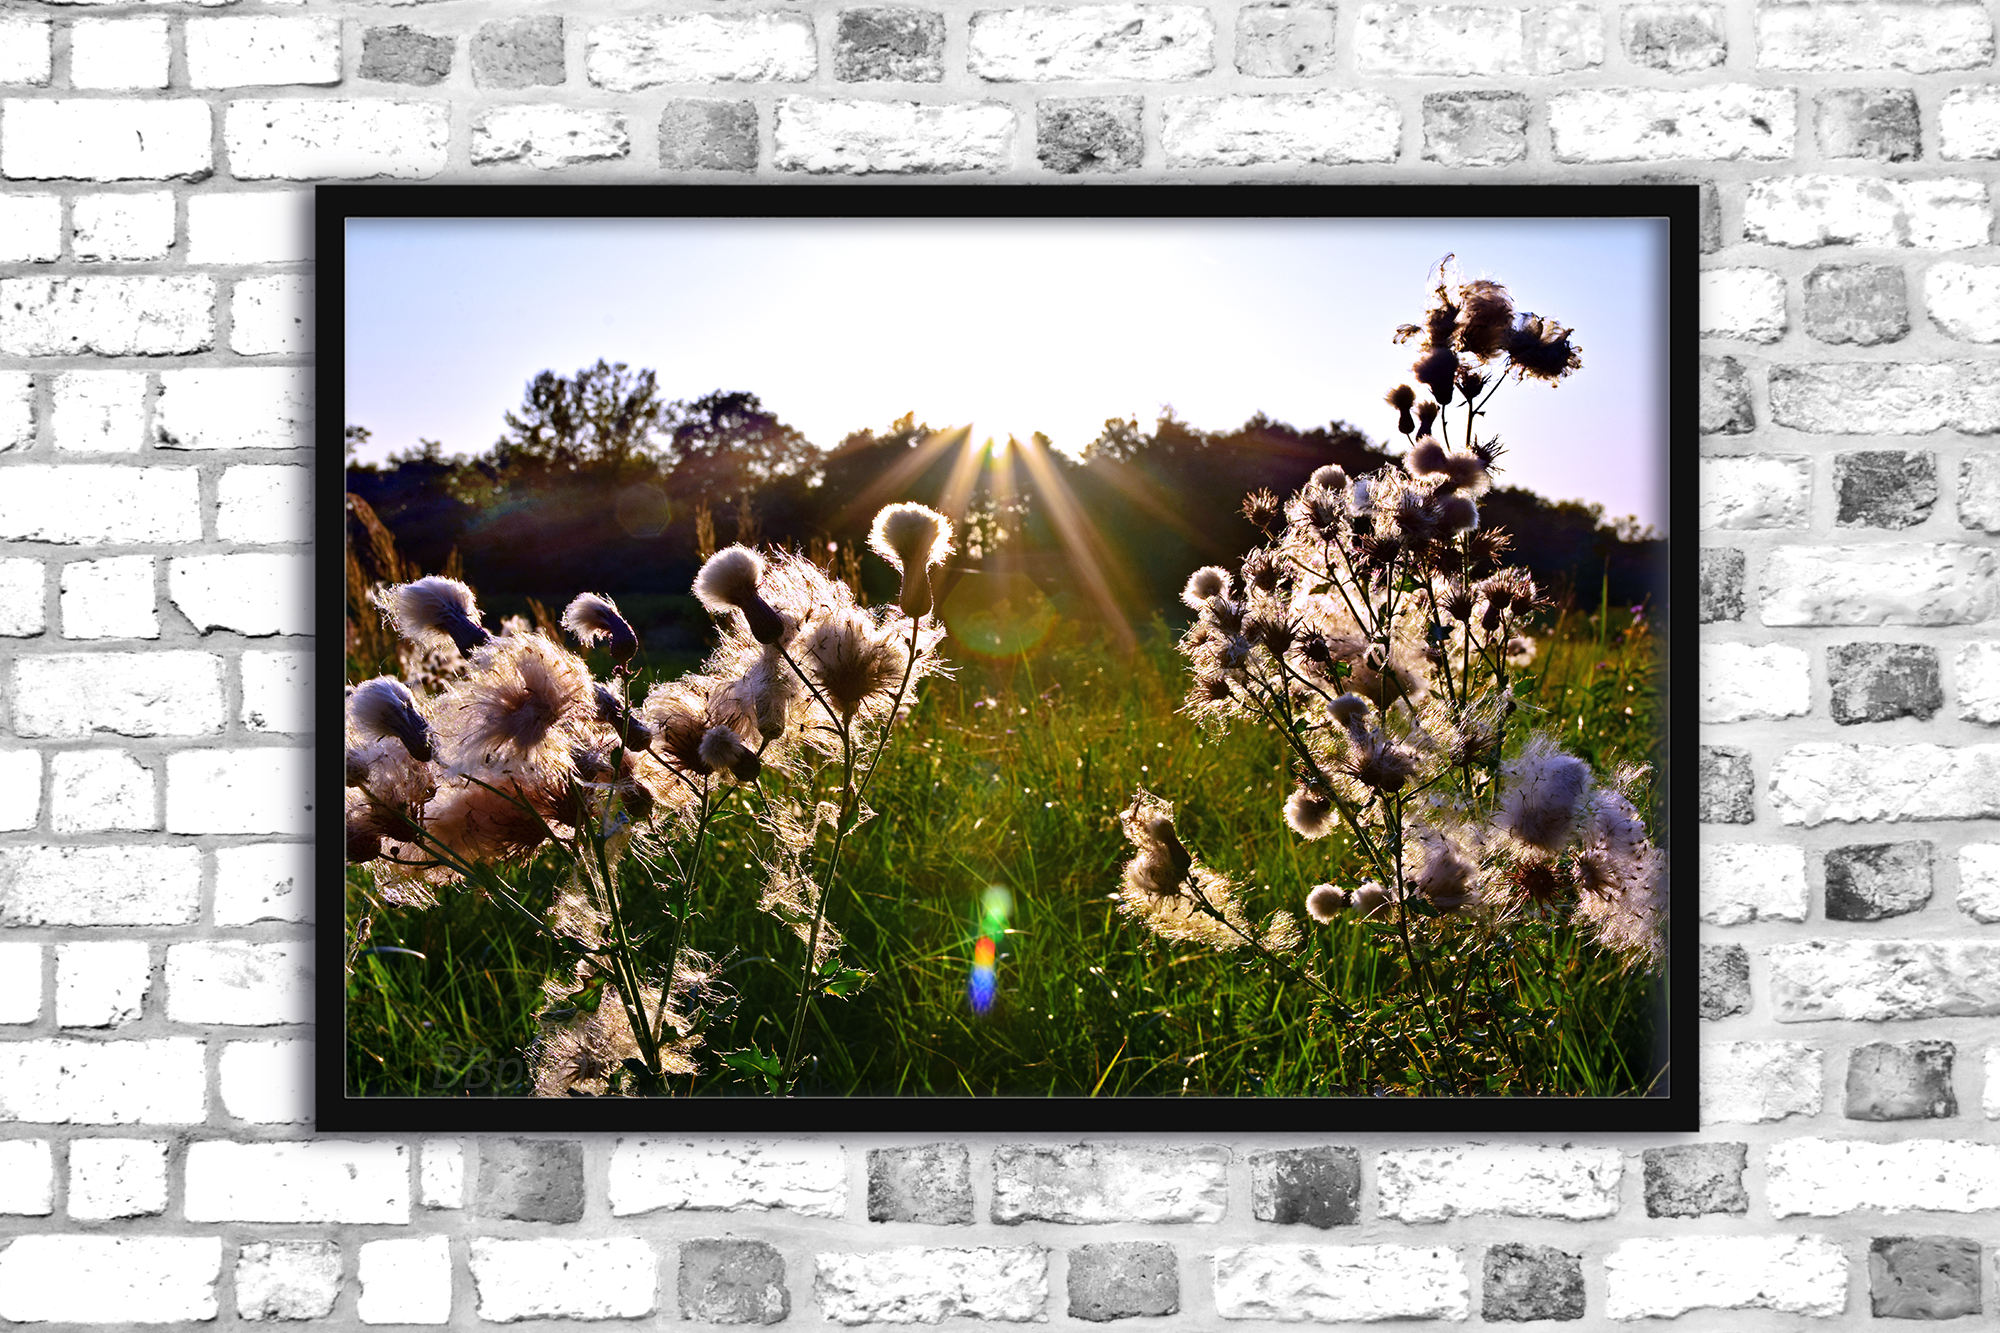 Nature photo, landscape photo, floral photo, fluffy grass example image 1